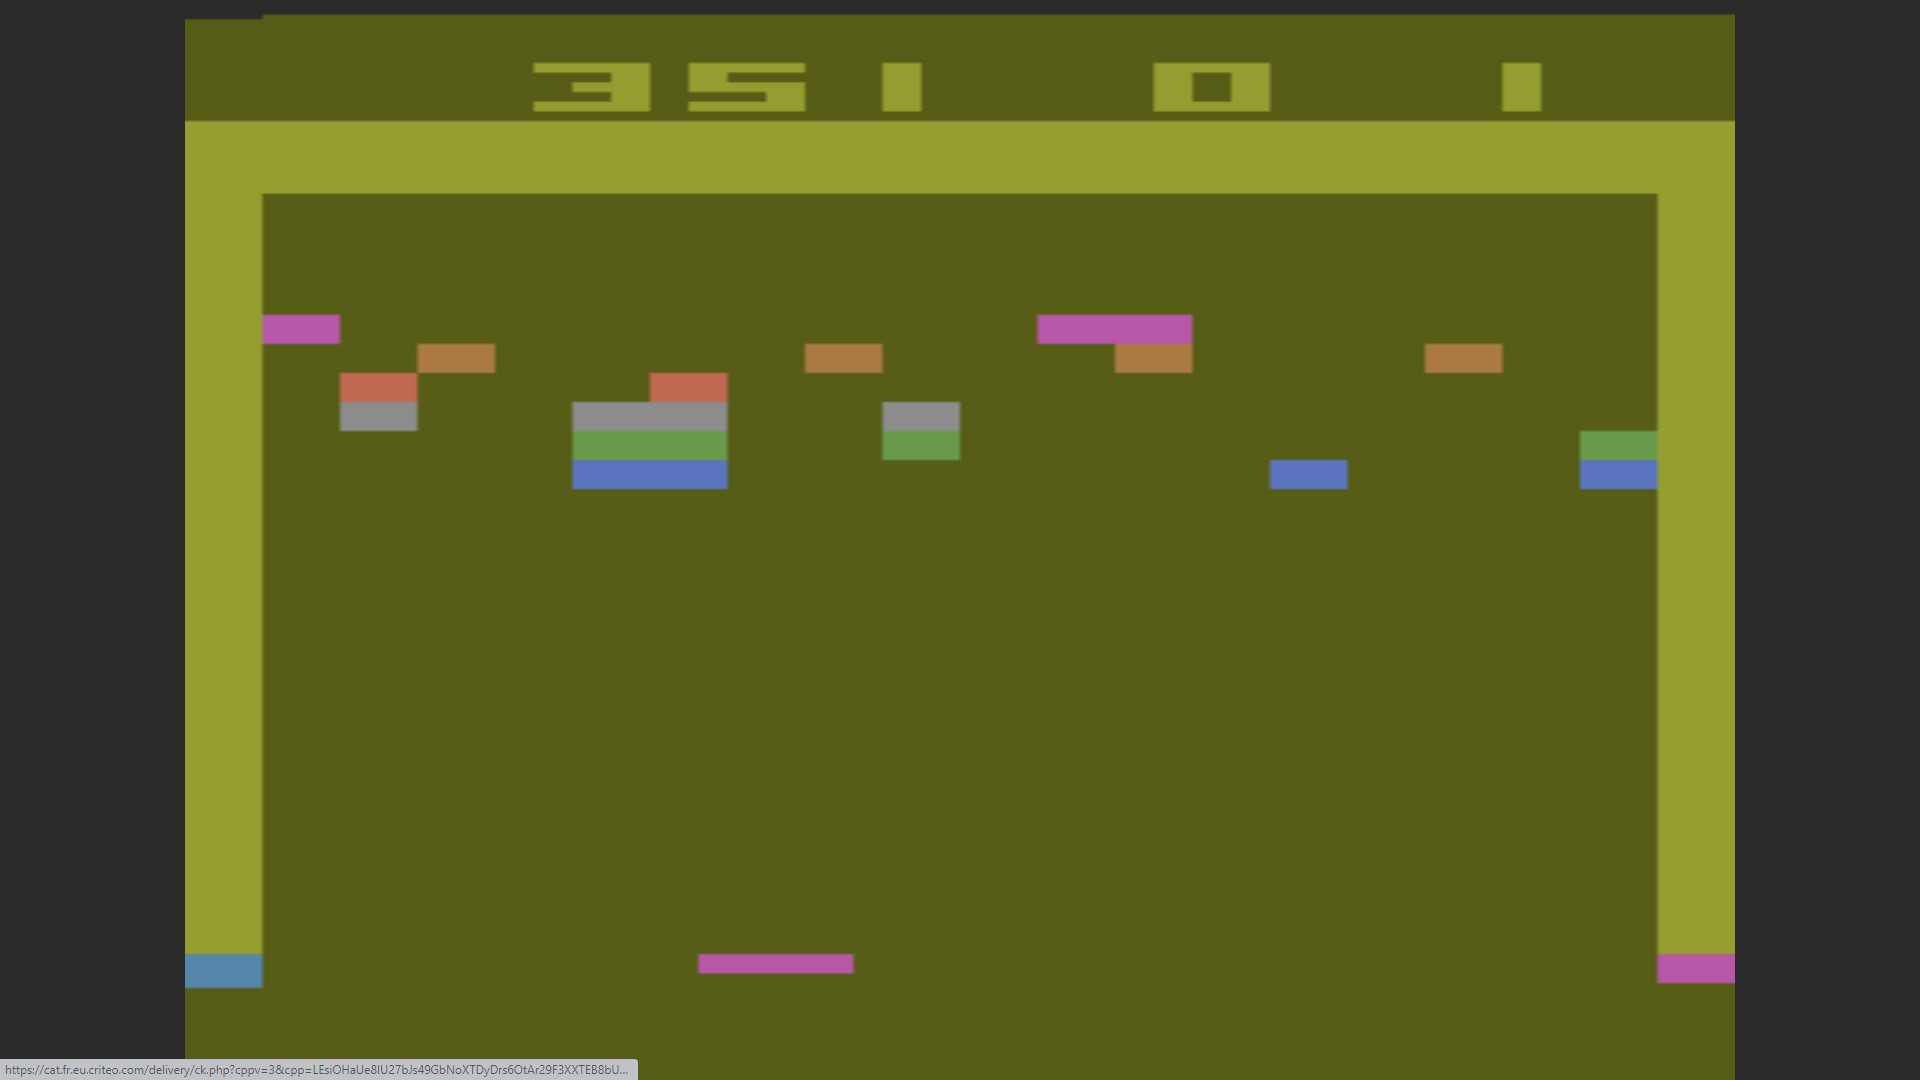 AkinNahtanoj: Breakout: Game 12 (Atari 2600 Emulated Expert/A Mode) 351 points on 2020-10-13 15:20:07